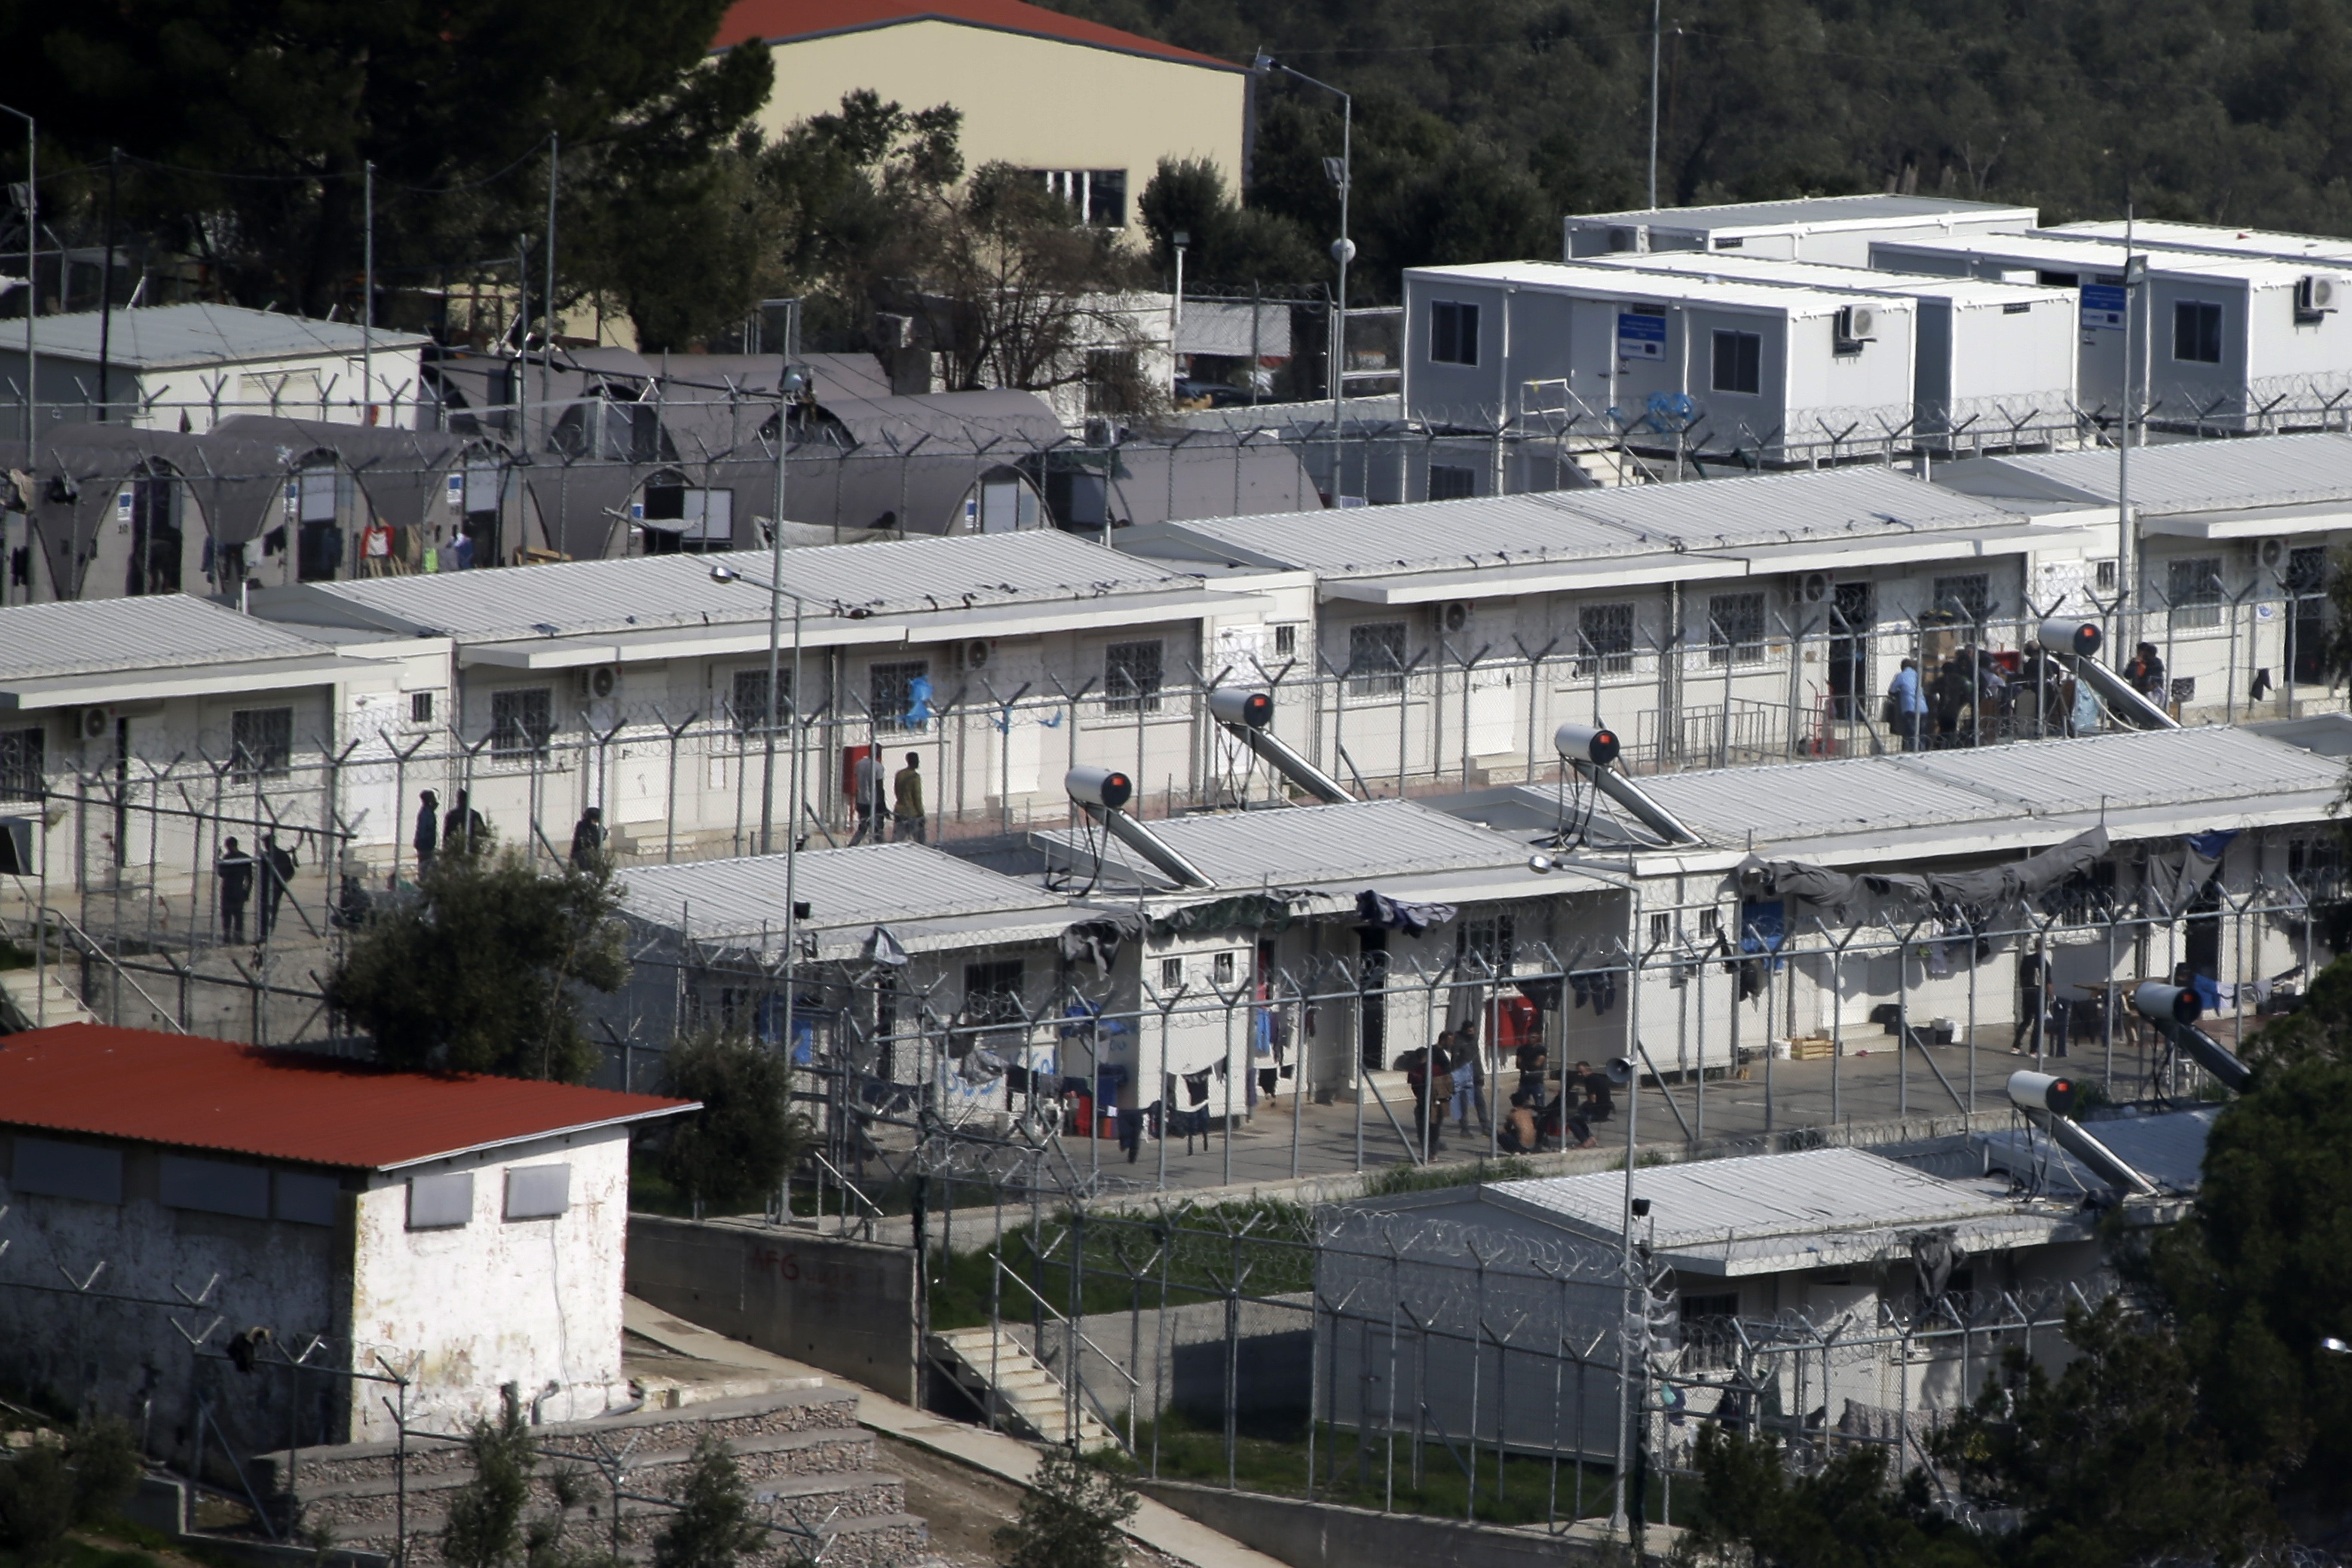 The Latest: Greek police confirm 1 killed at migrant camp